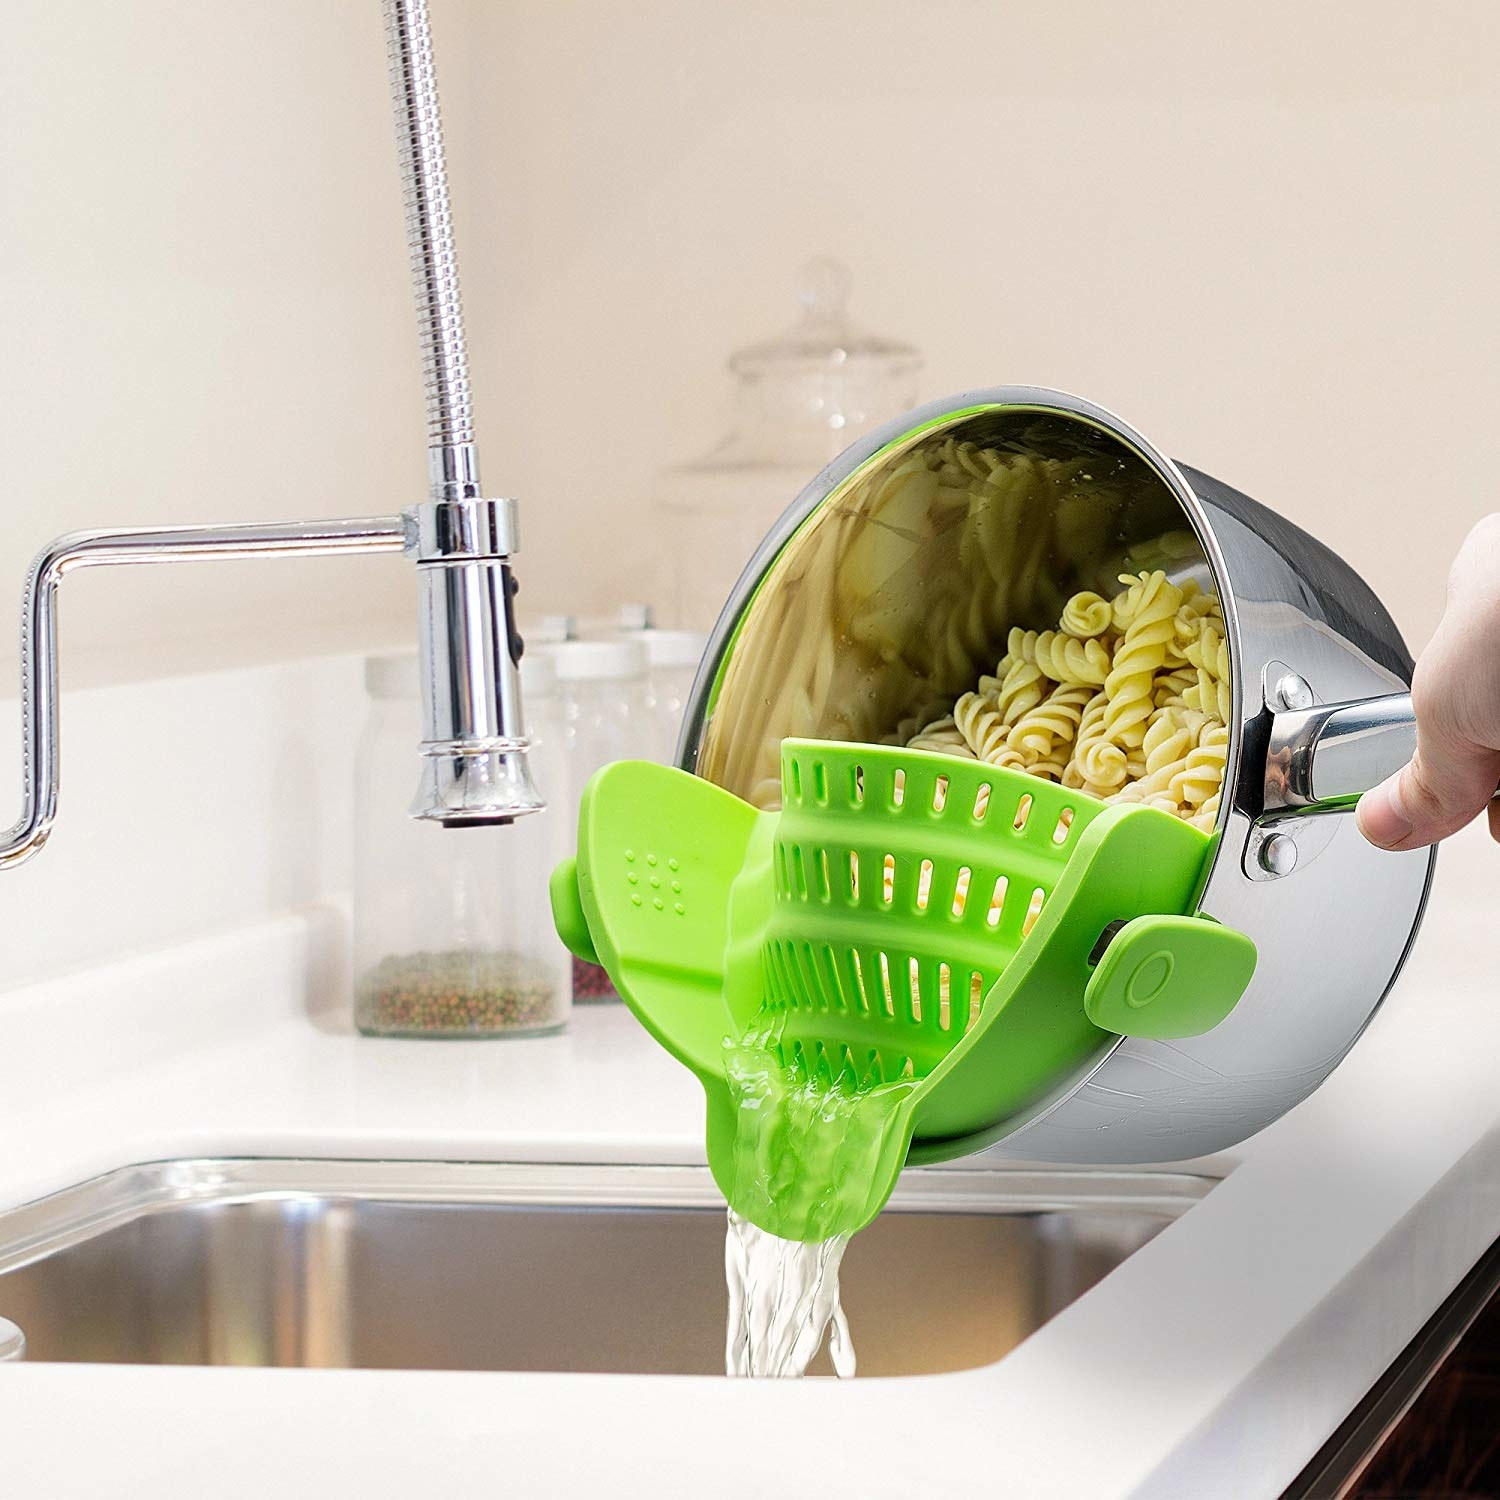 Model using the colander to strain noodles